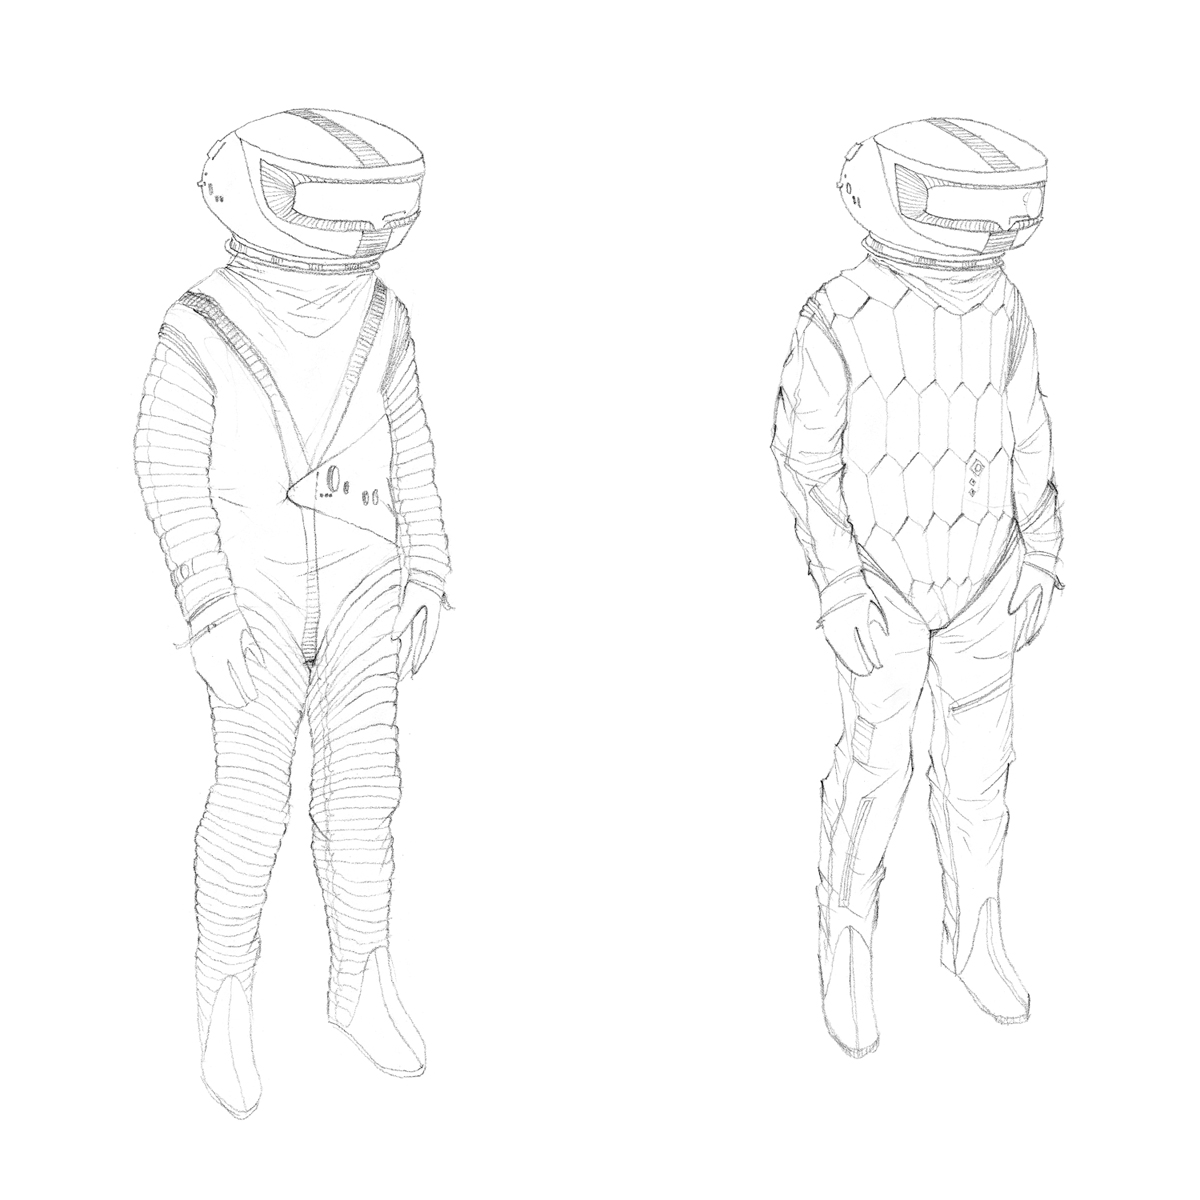 Early space suit concepts